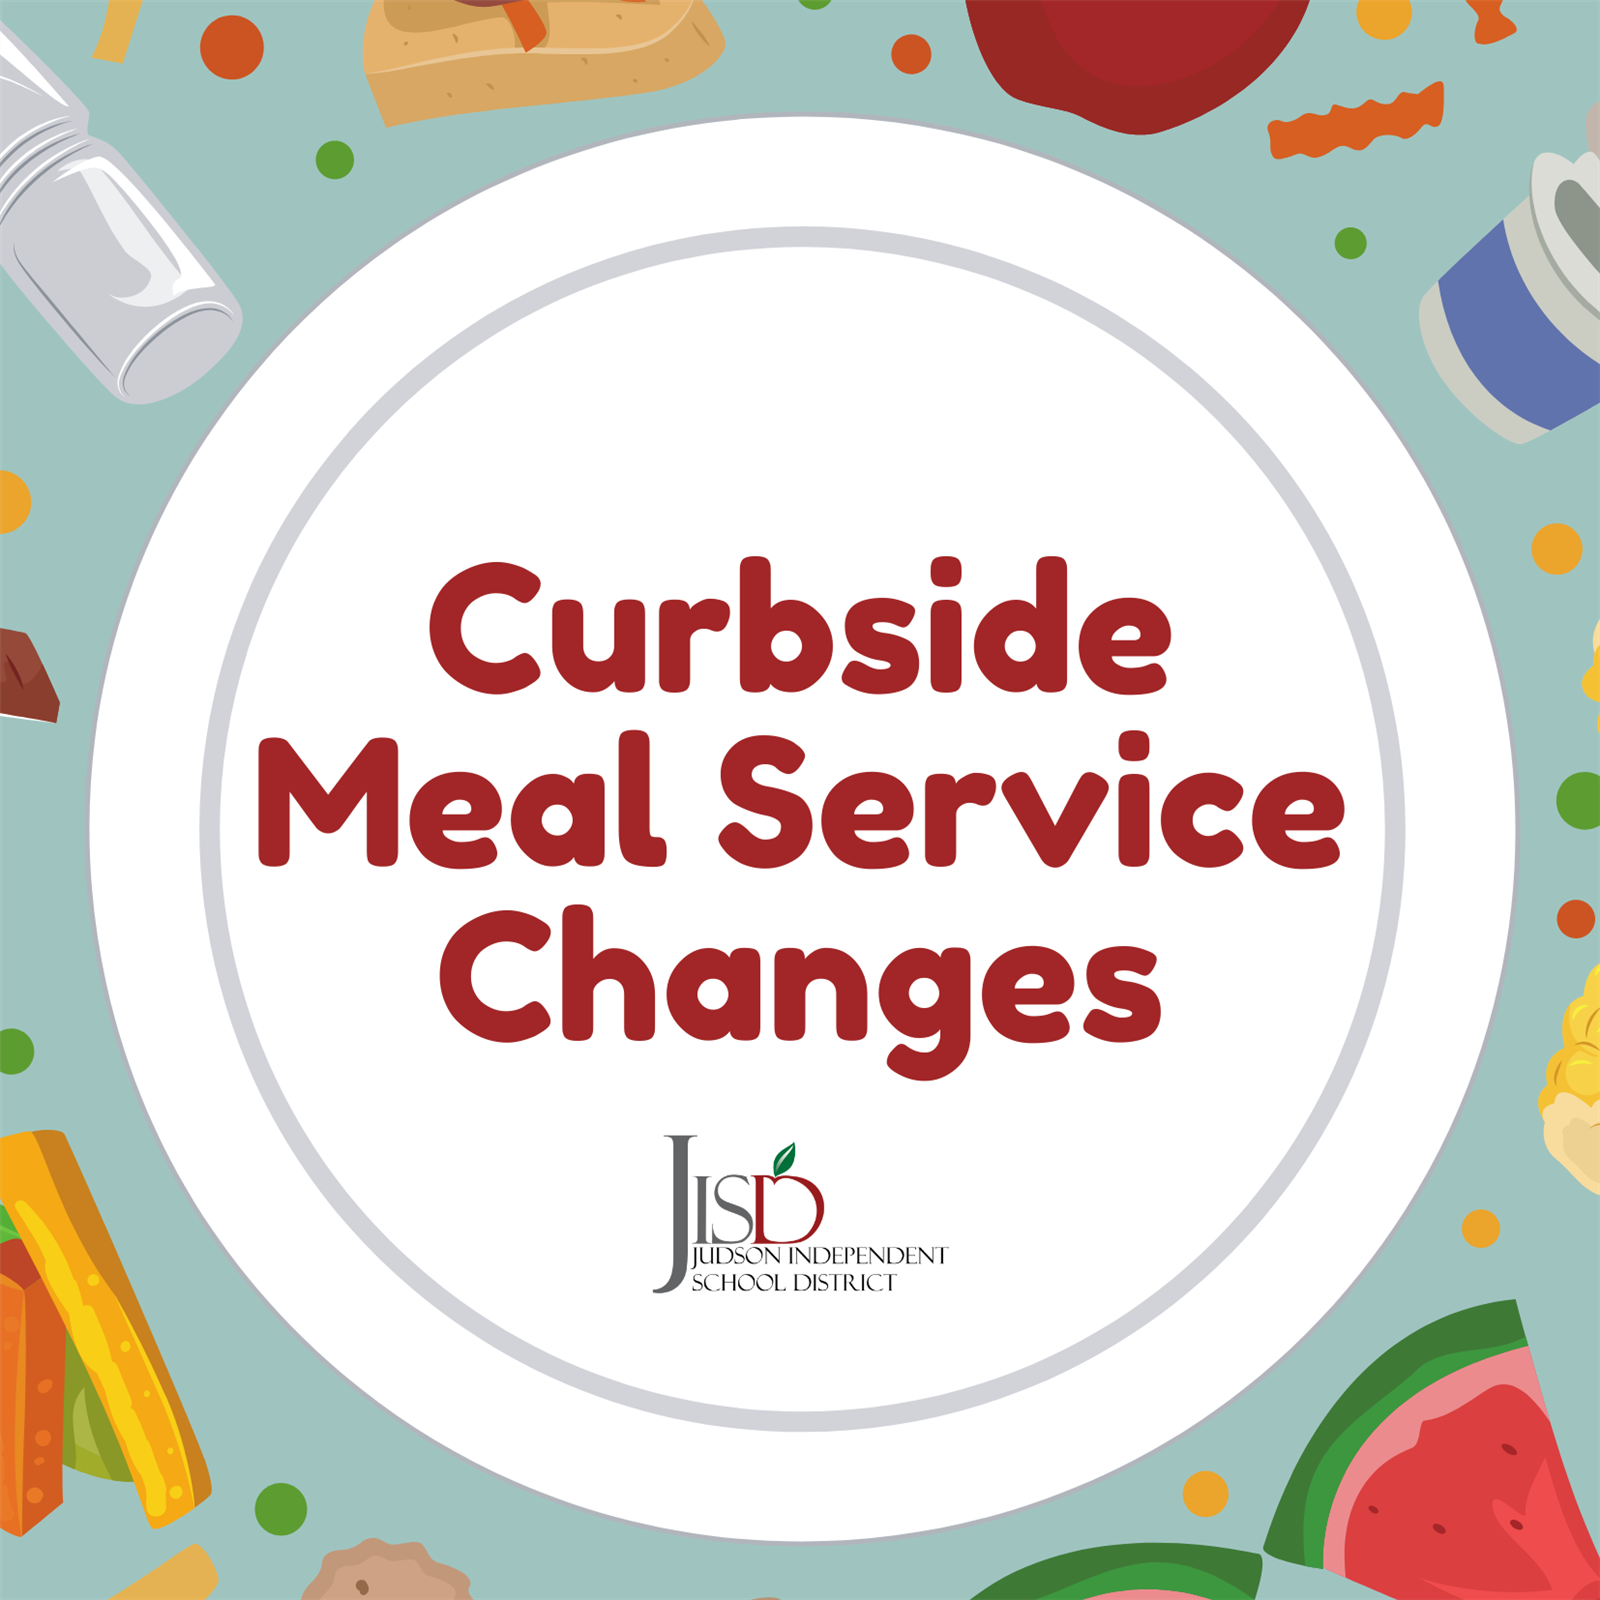 Curbside Meal Service Changes